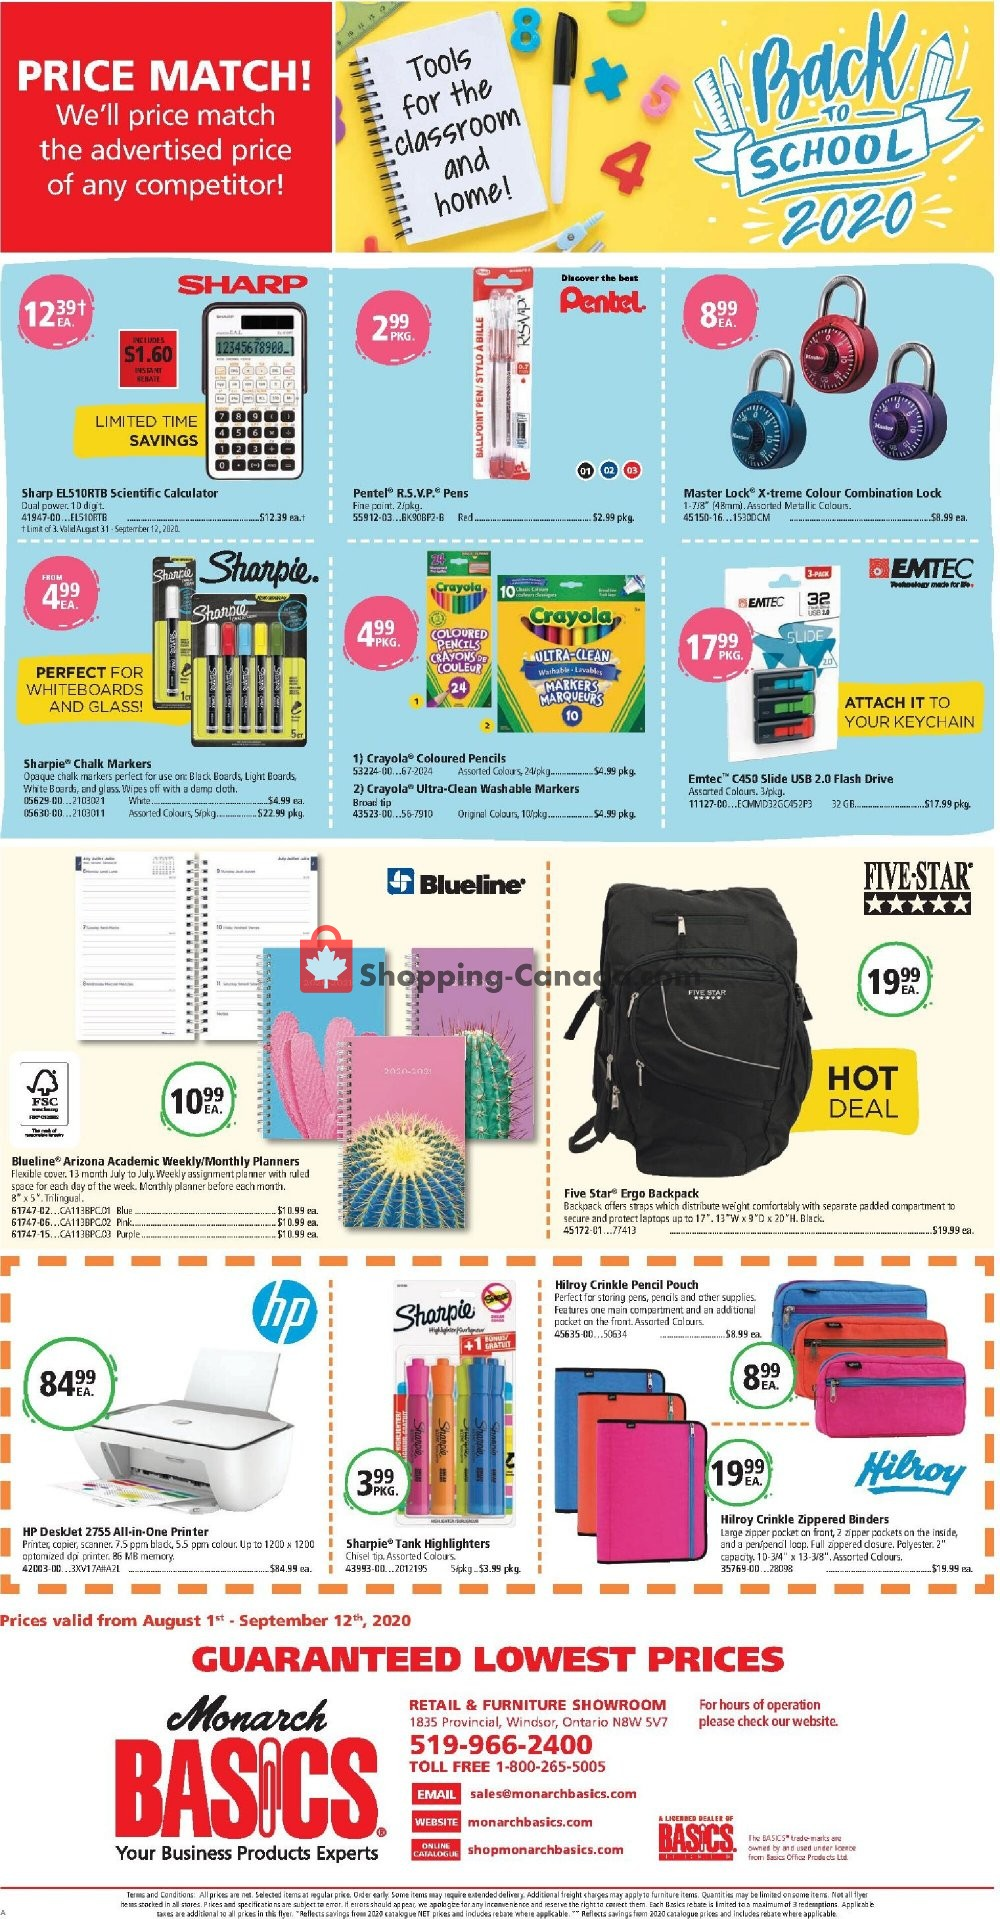 Flyer Basics Office Products Canada - from Saturday August 1, 2020 to Saturday September 12, 2020